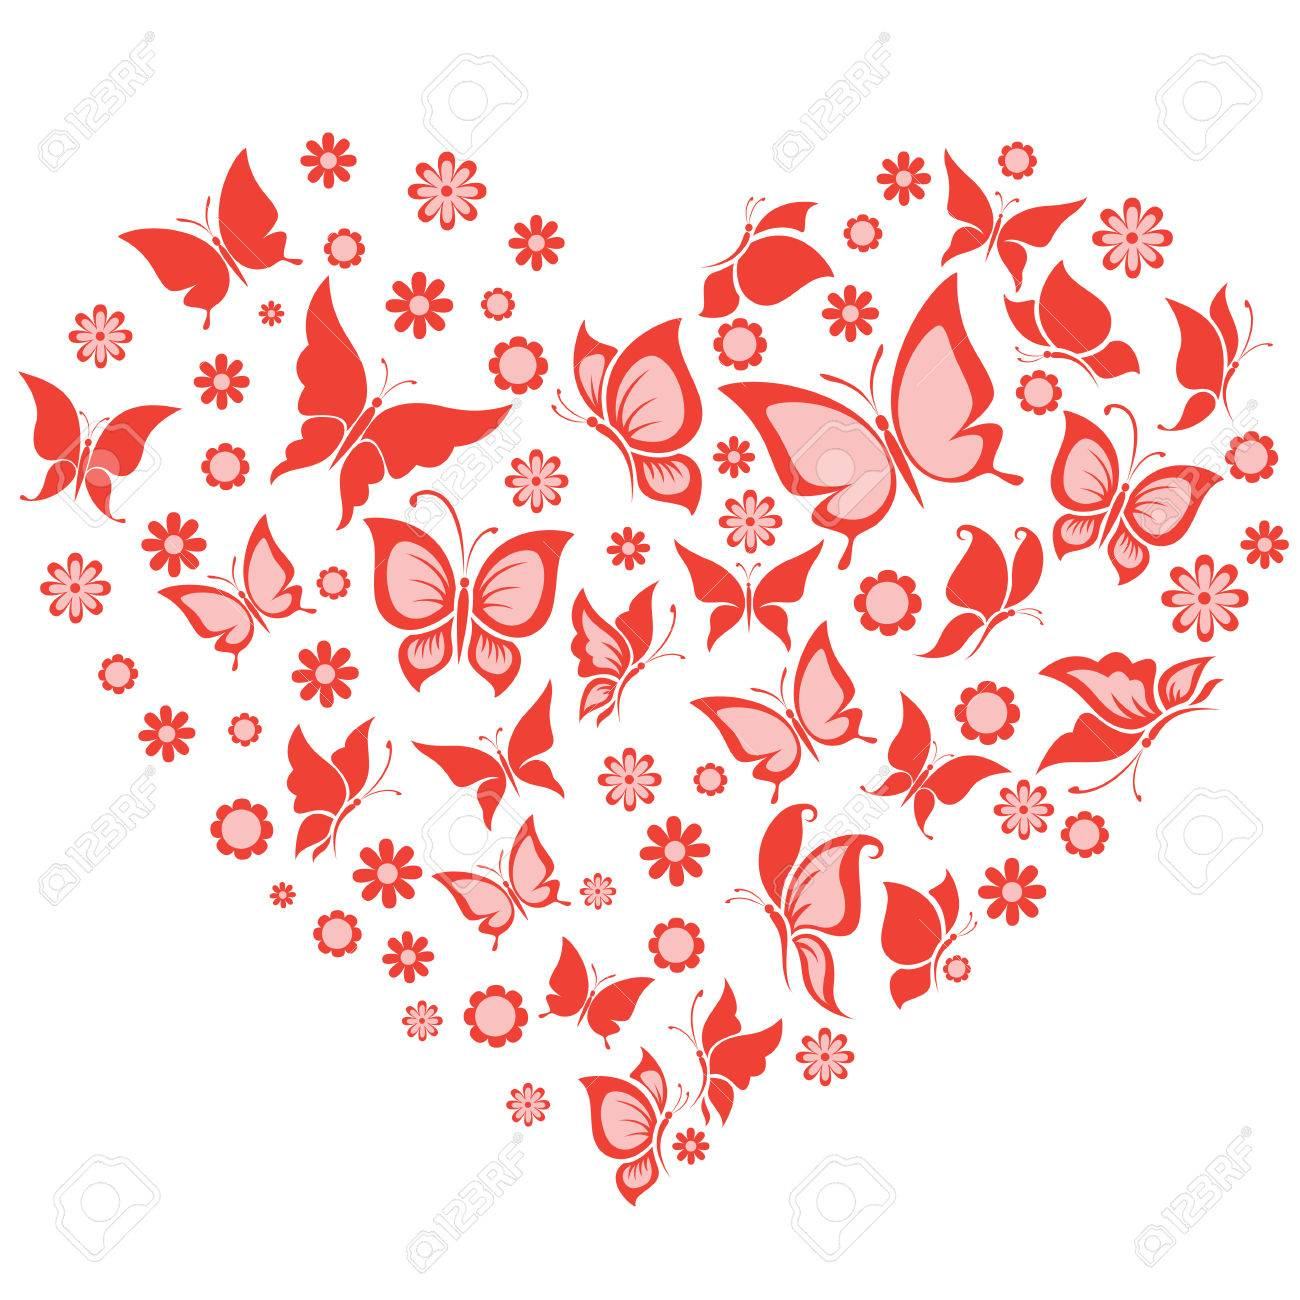 Vector Illustration Of The Butterfly And Flowers In Heart Shape